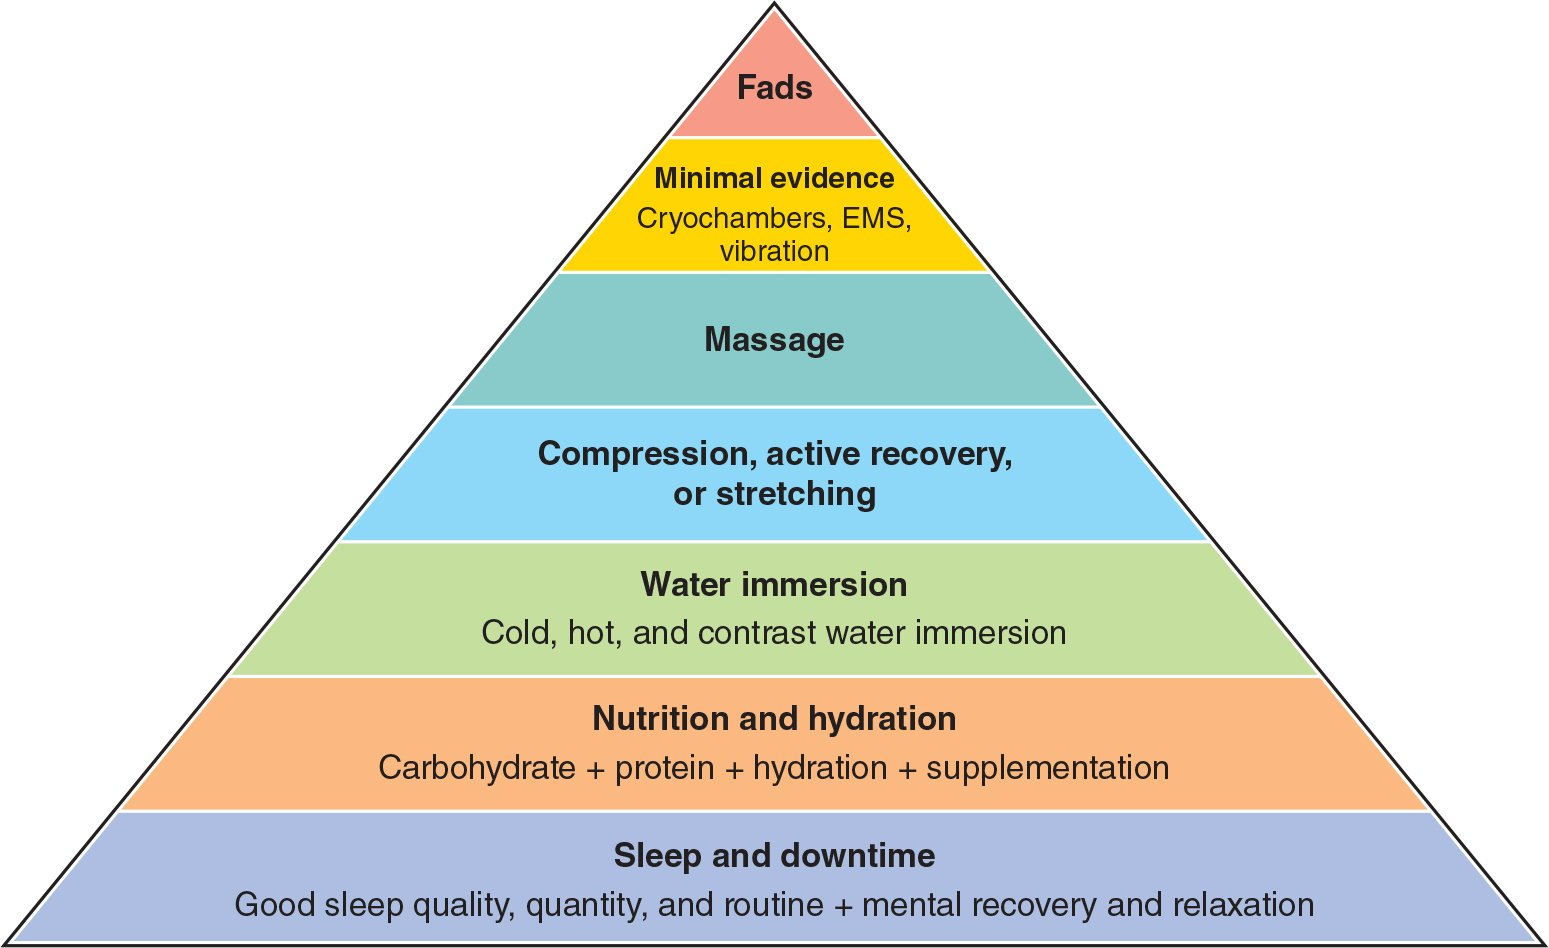 What are the best recovery strategies for athletes?